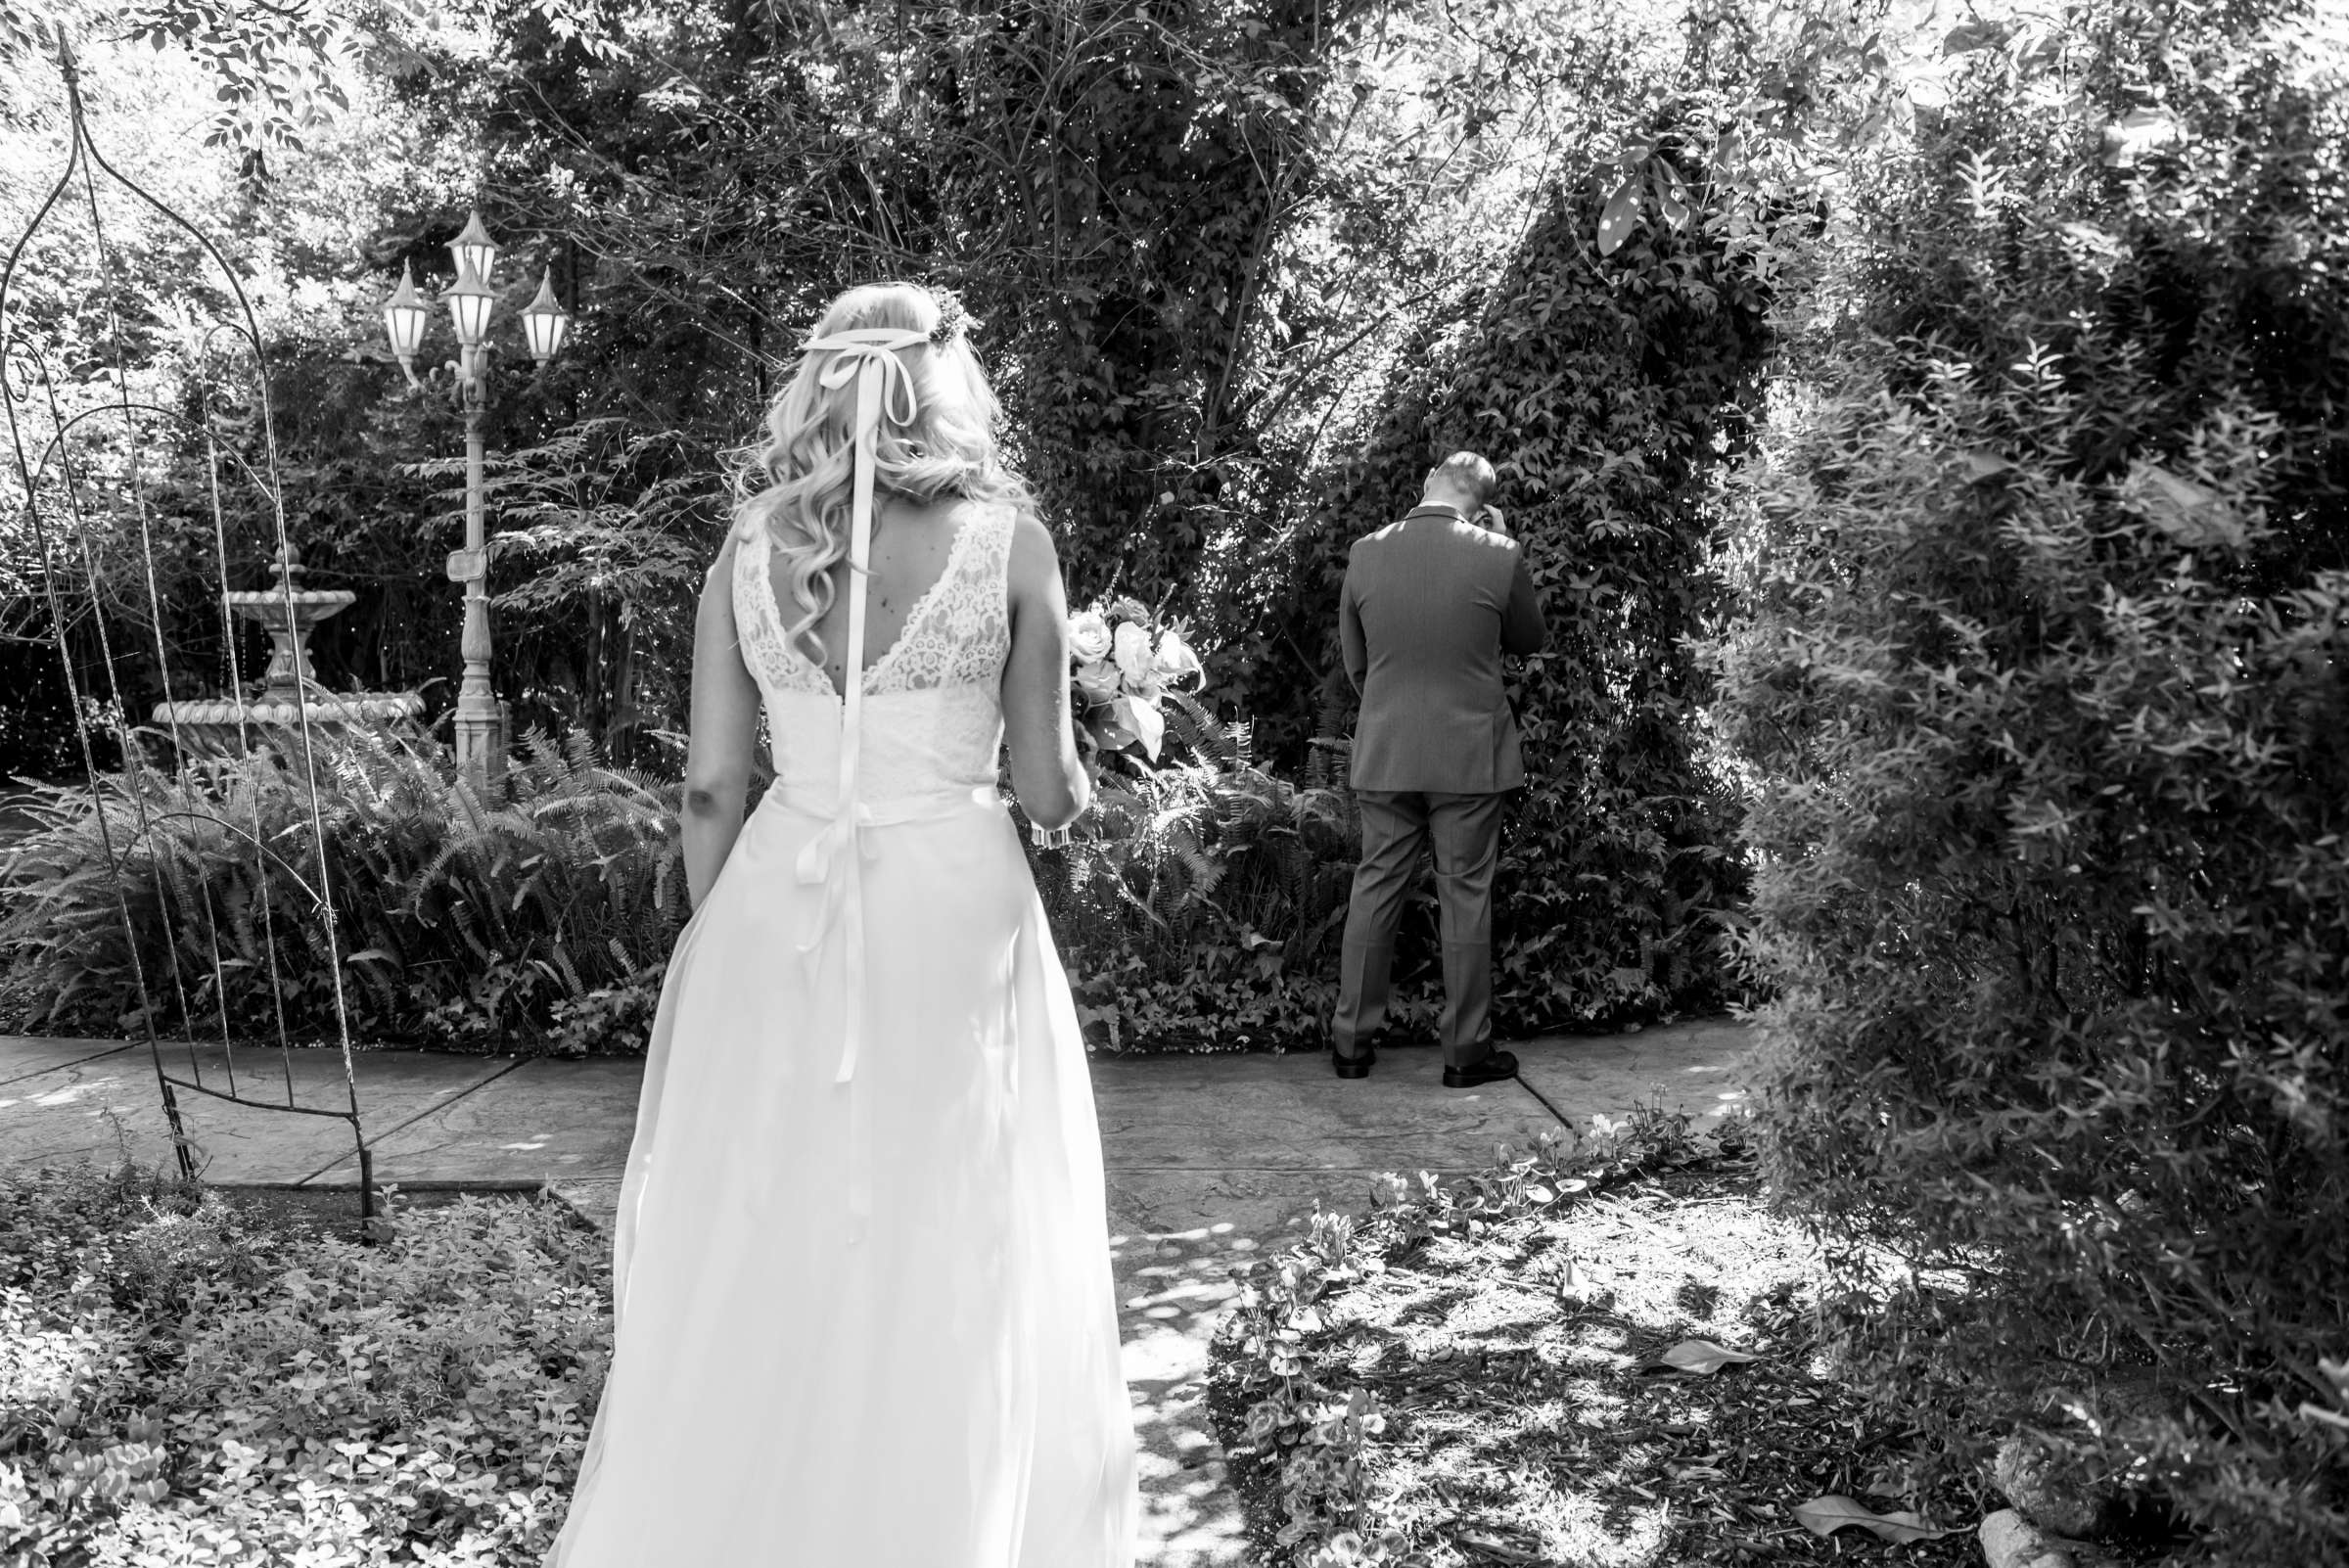 Twin Oaks House & Gardens Wedding Estate Wedding, Brittany and Sean Wedding Photo #59 by True Photography